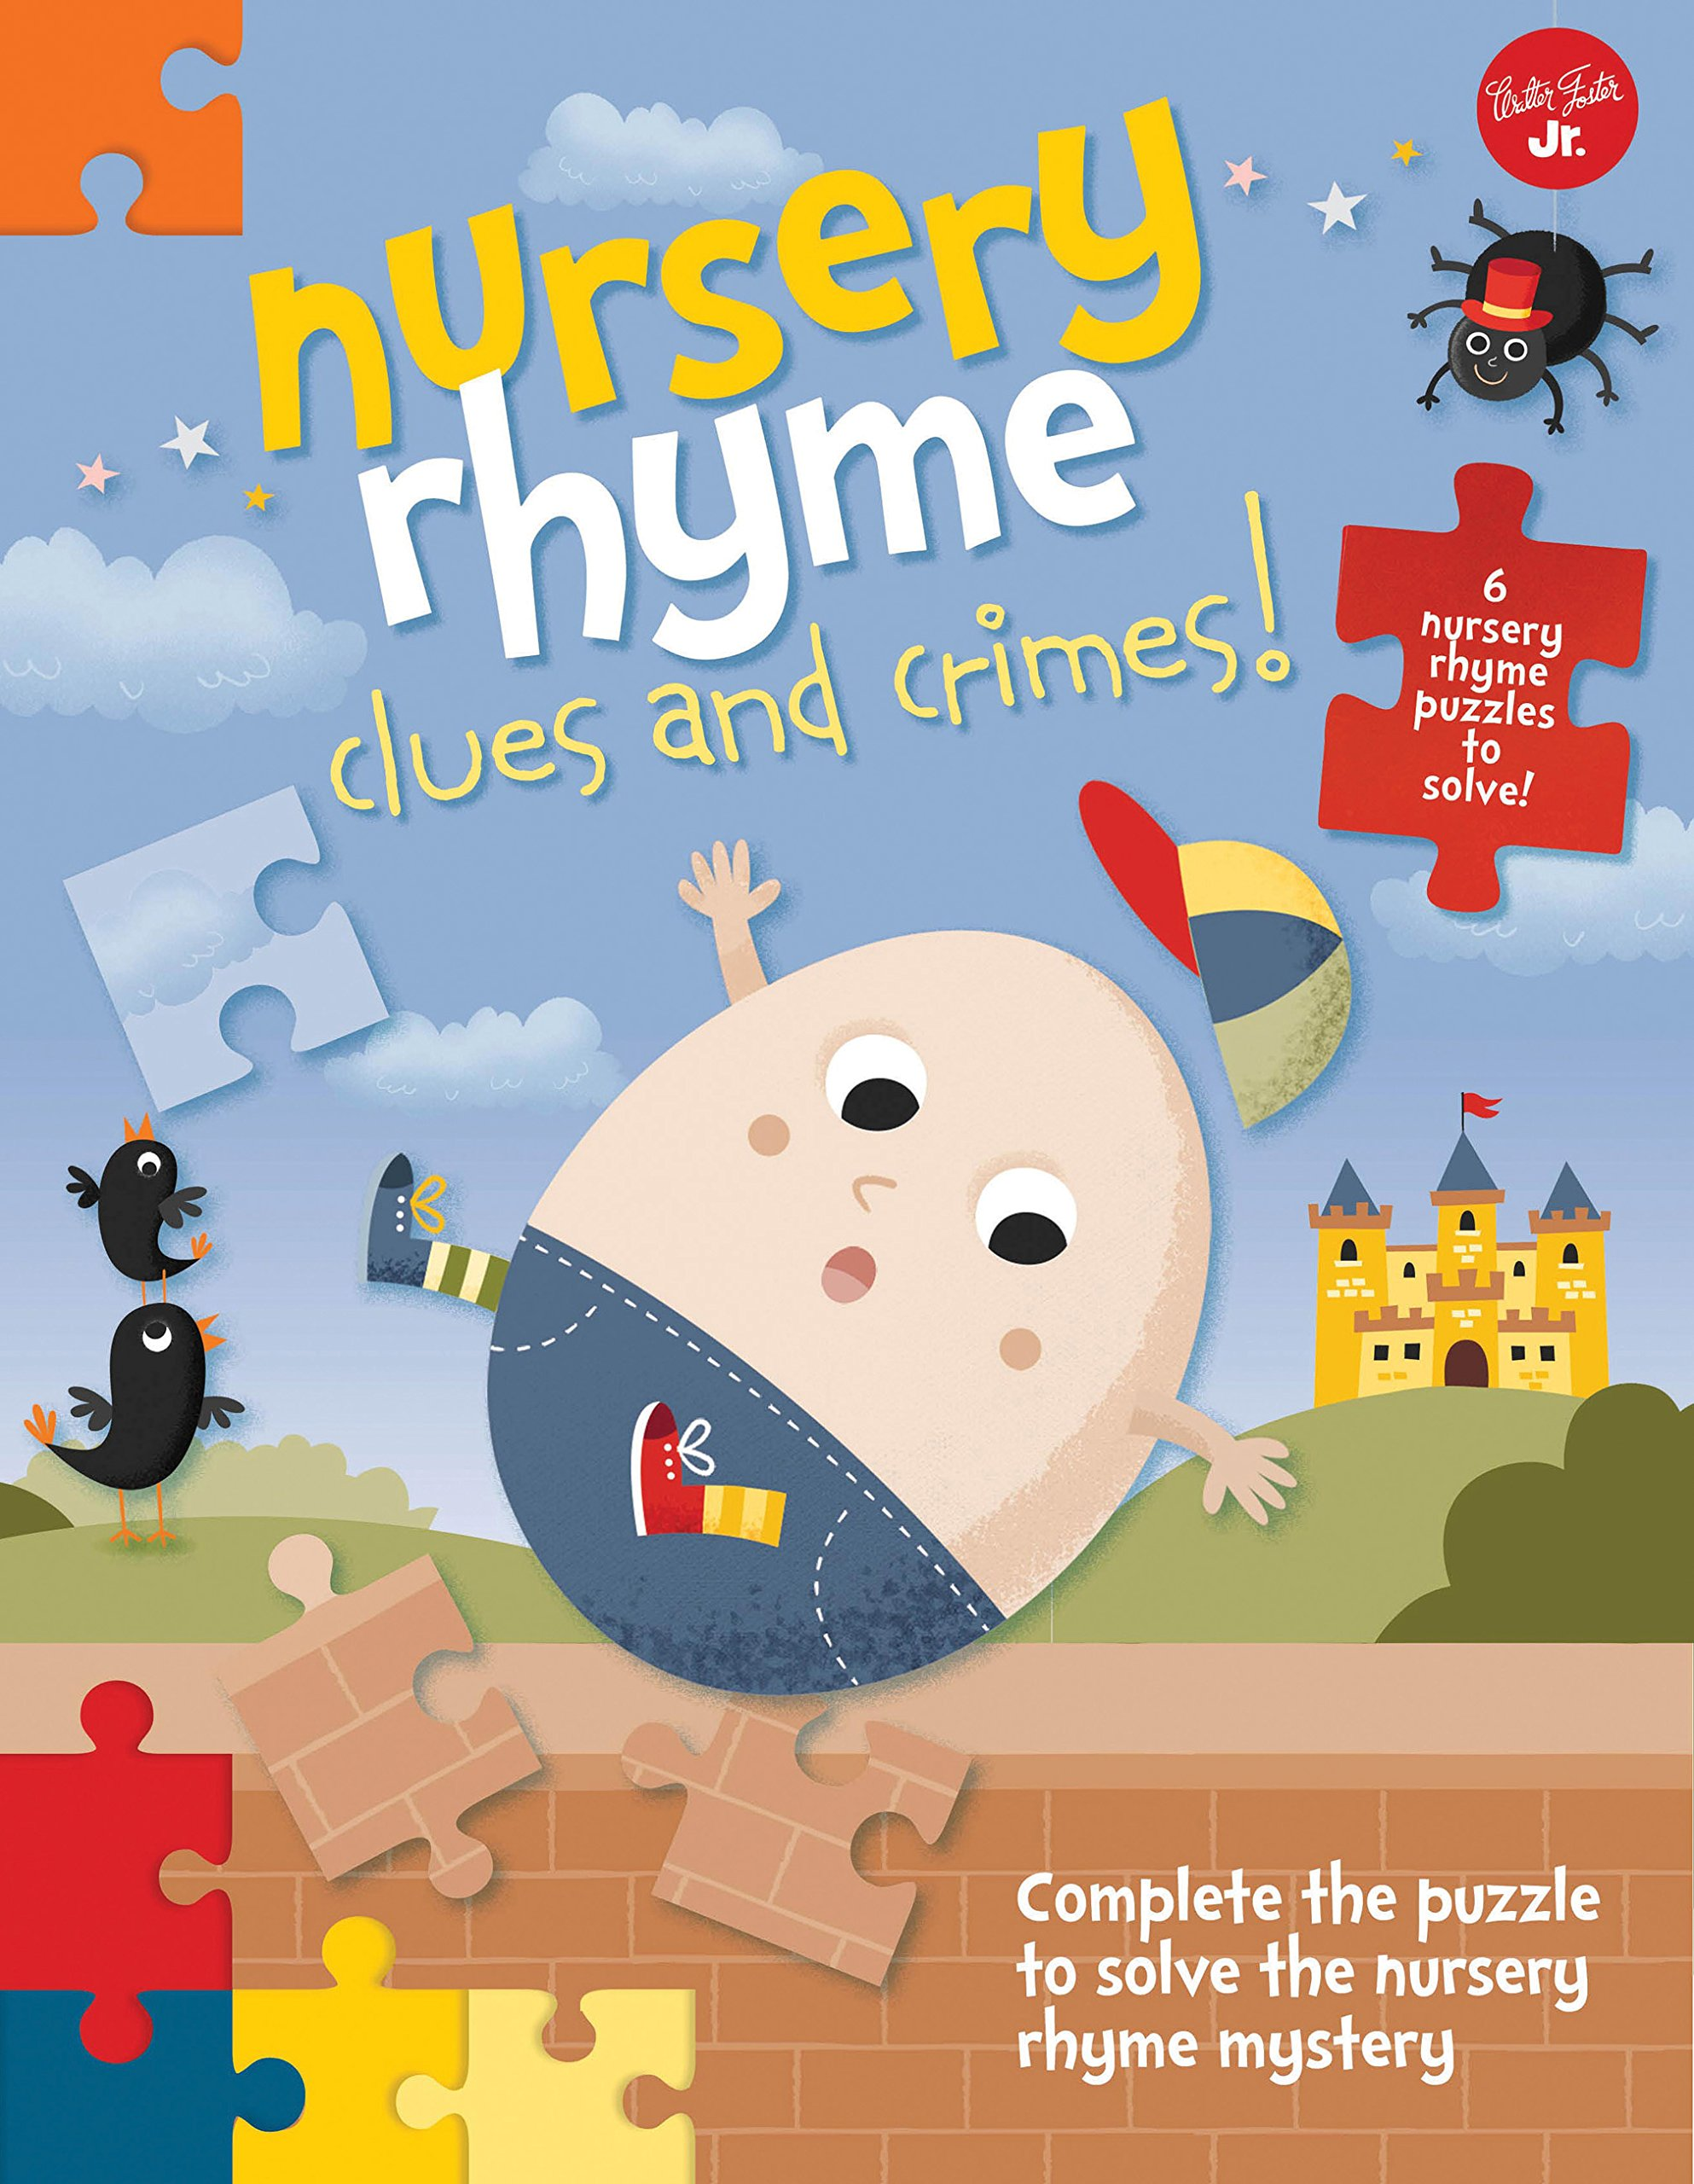 Nursery Rhyme Clues and Crimes!: Complete the puzzle to solve the nursery rhyme mystery - 6 nursery rhyme puzzles to solve! ebook